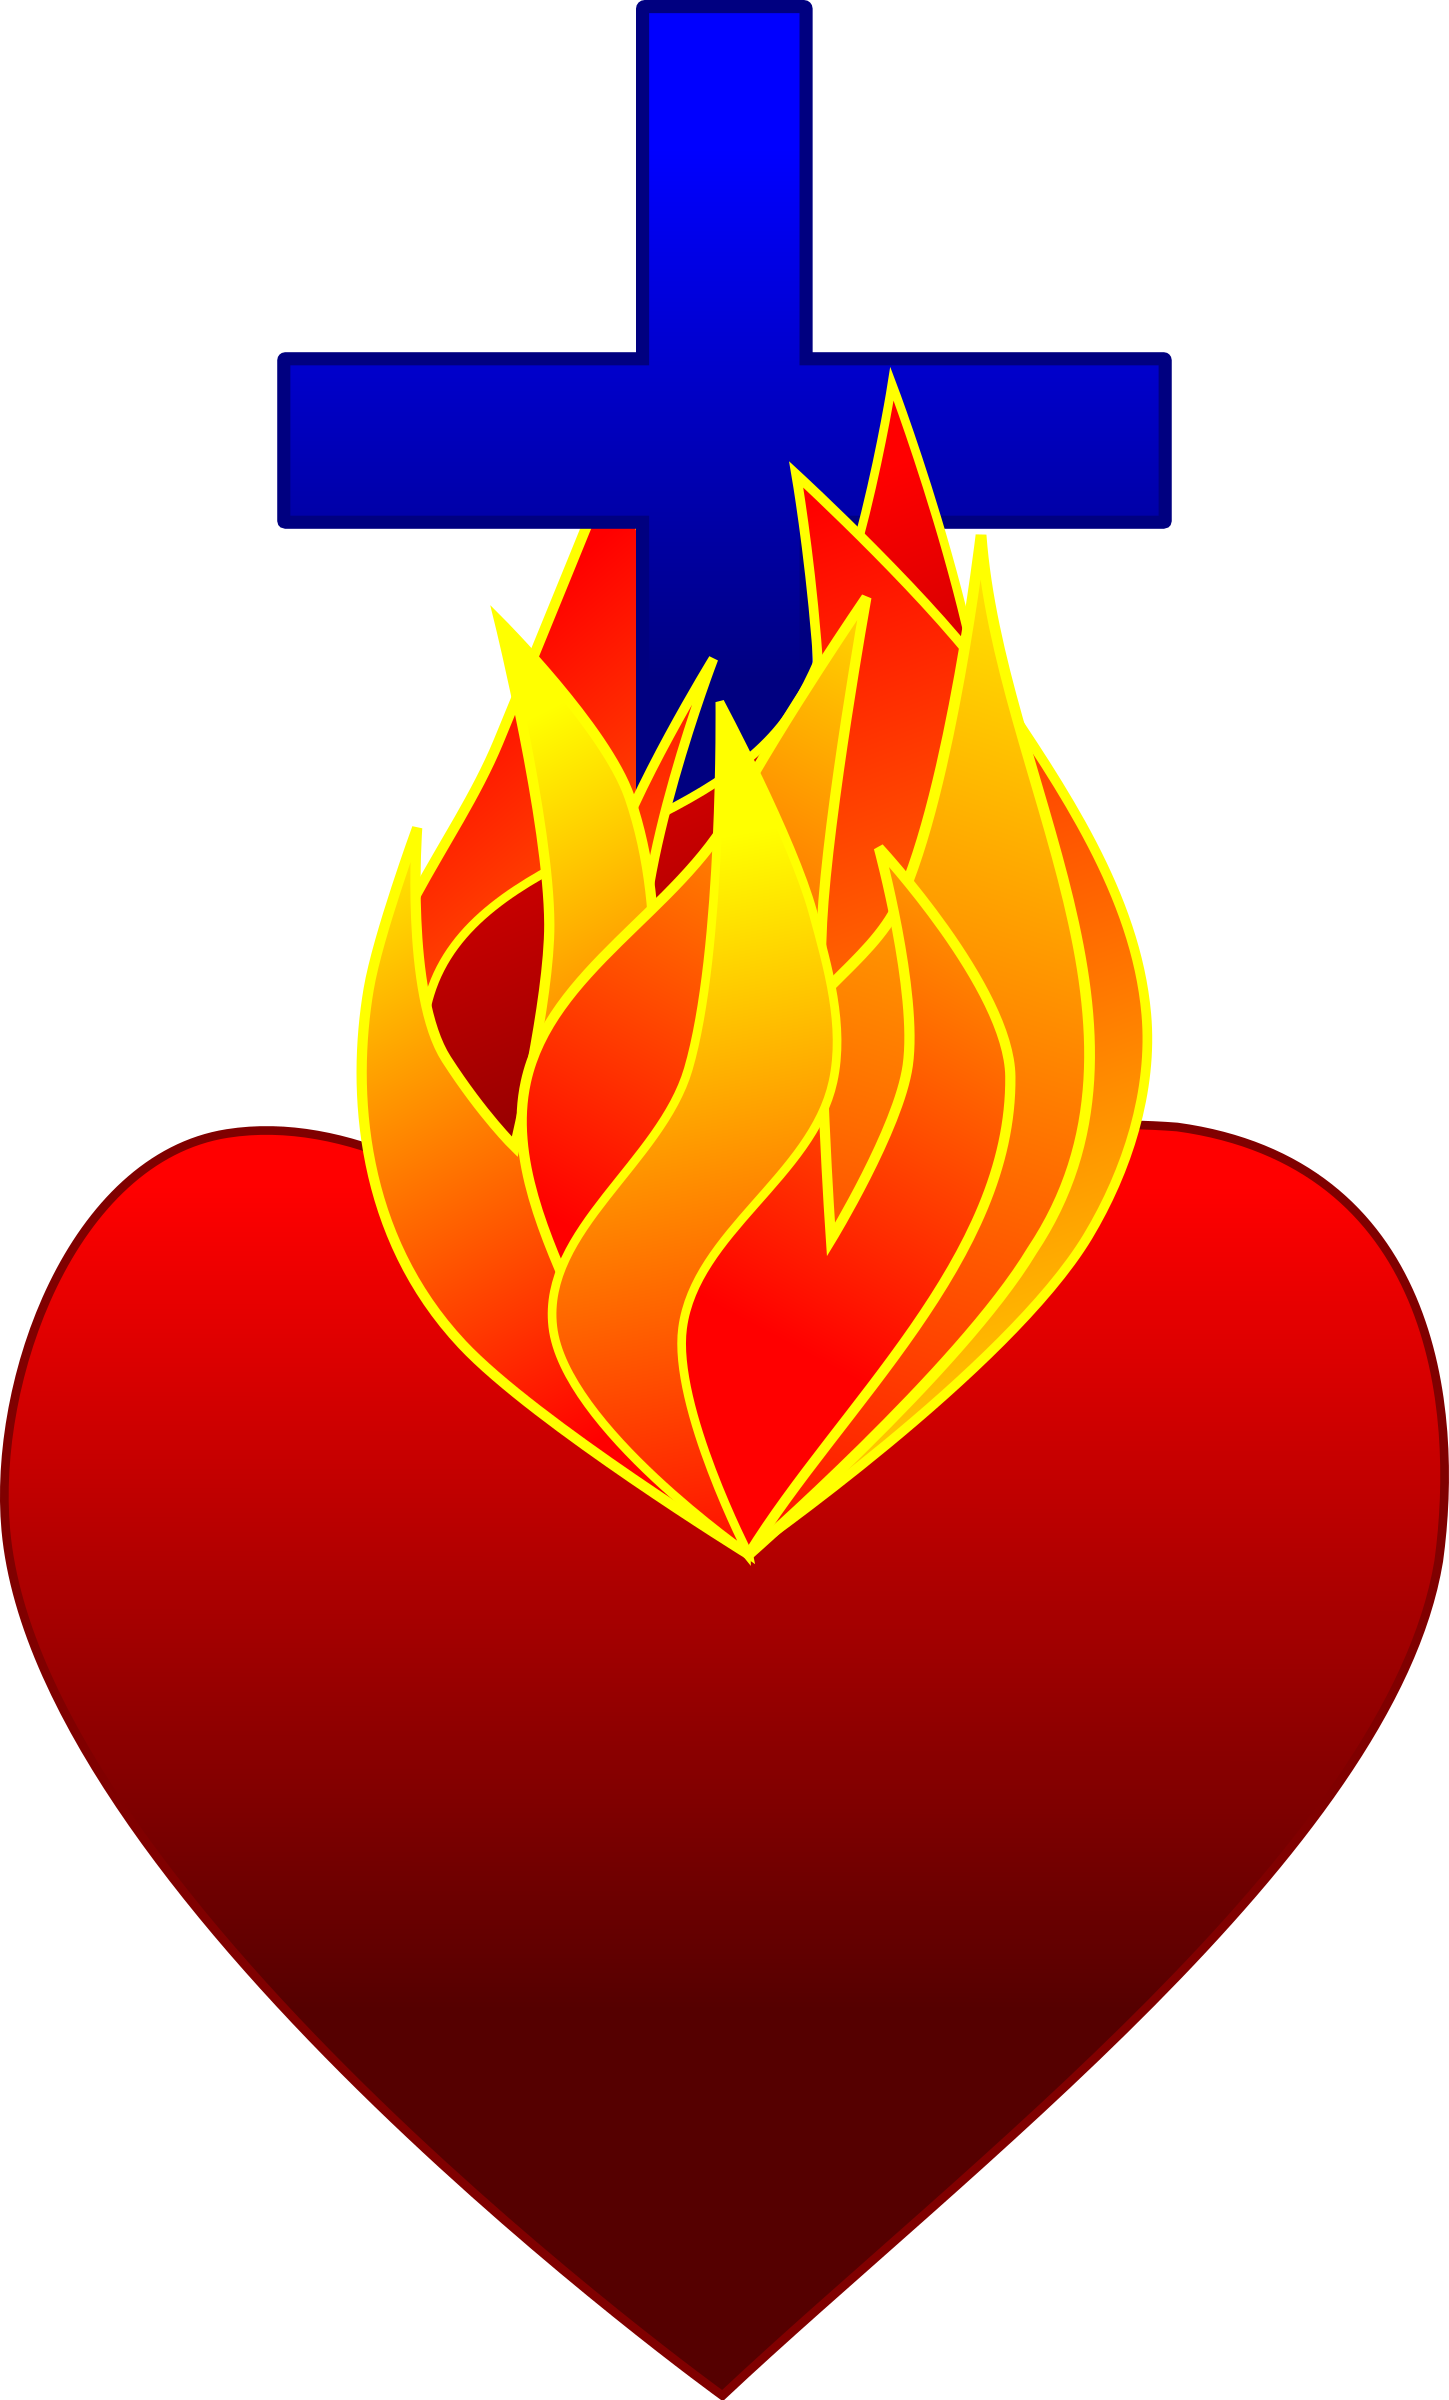 Sacred heart png. Free flame cliparts download